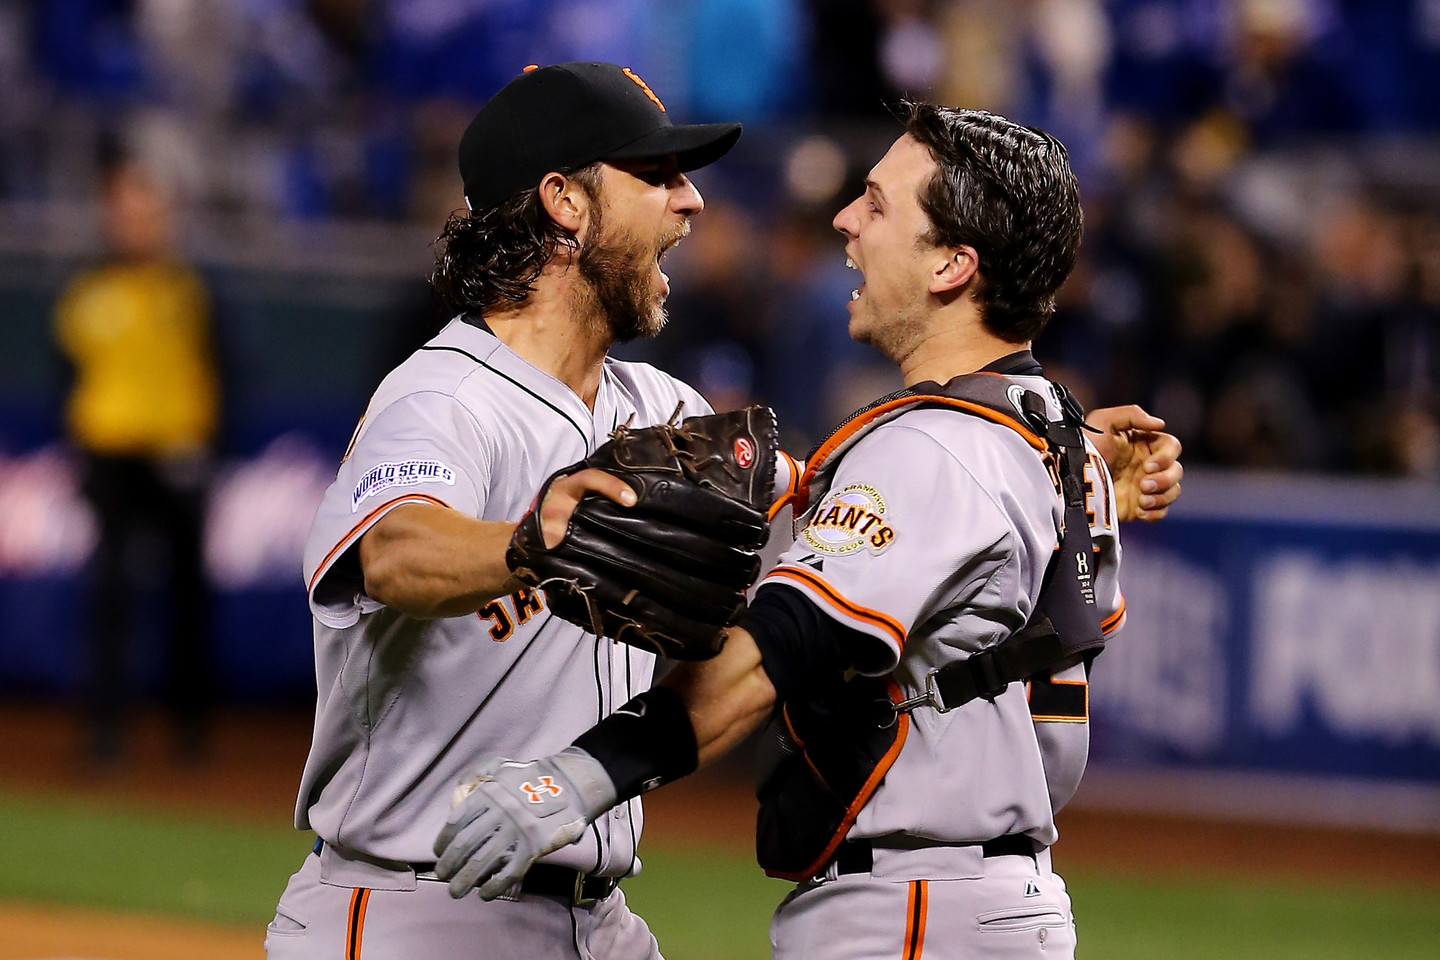 Buster Posey #28 and Madison Bumgarner #40 of the San Francisco Giants celebrate after defeating the Kansas City Royals to win Game Seven of the 2014 World Series. (Photo by Elsa/Getty Images)